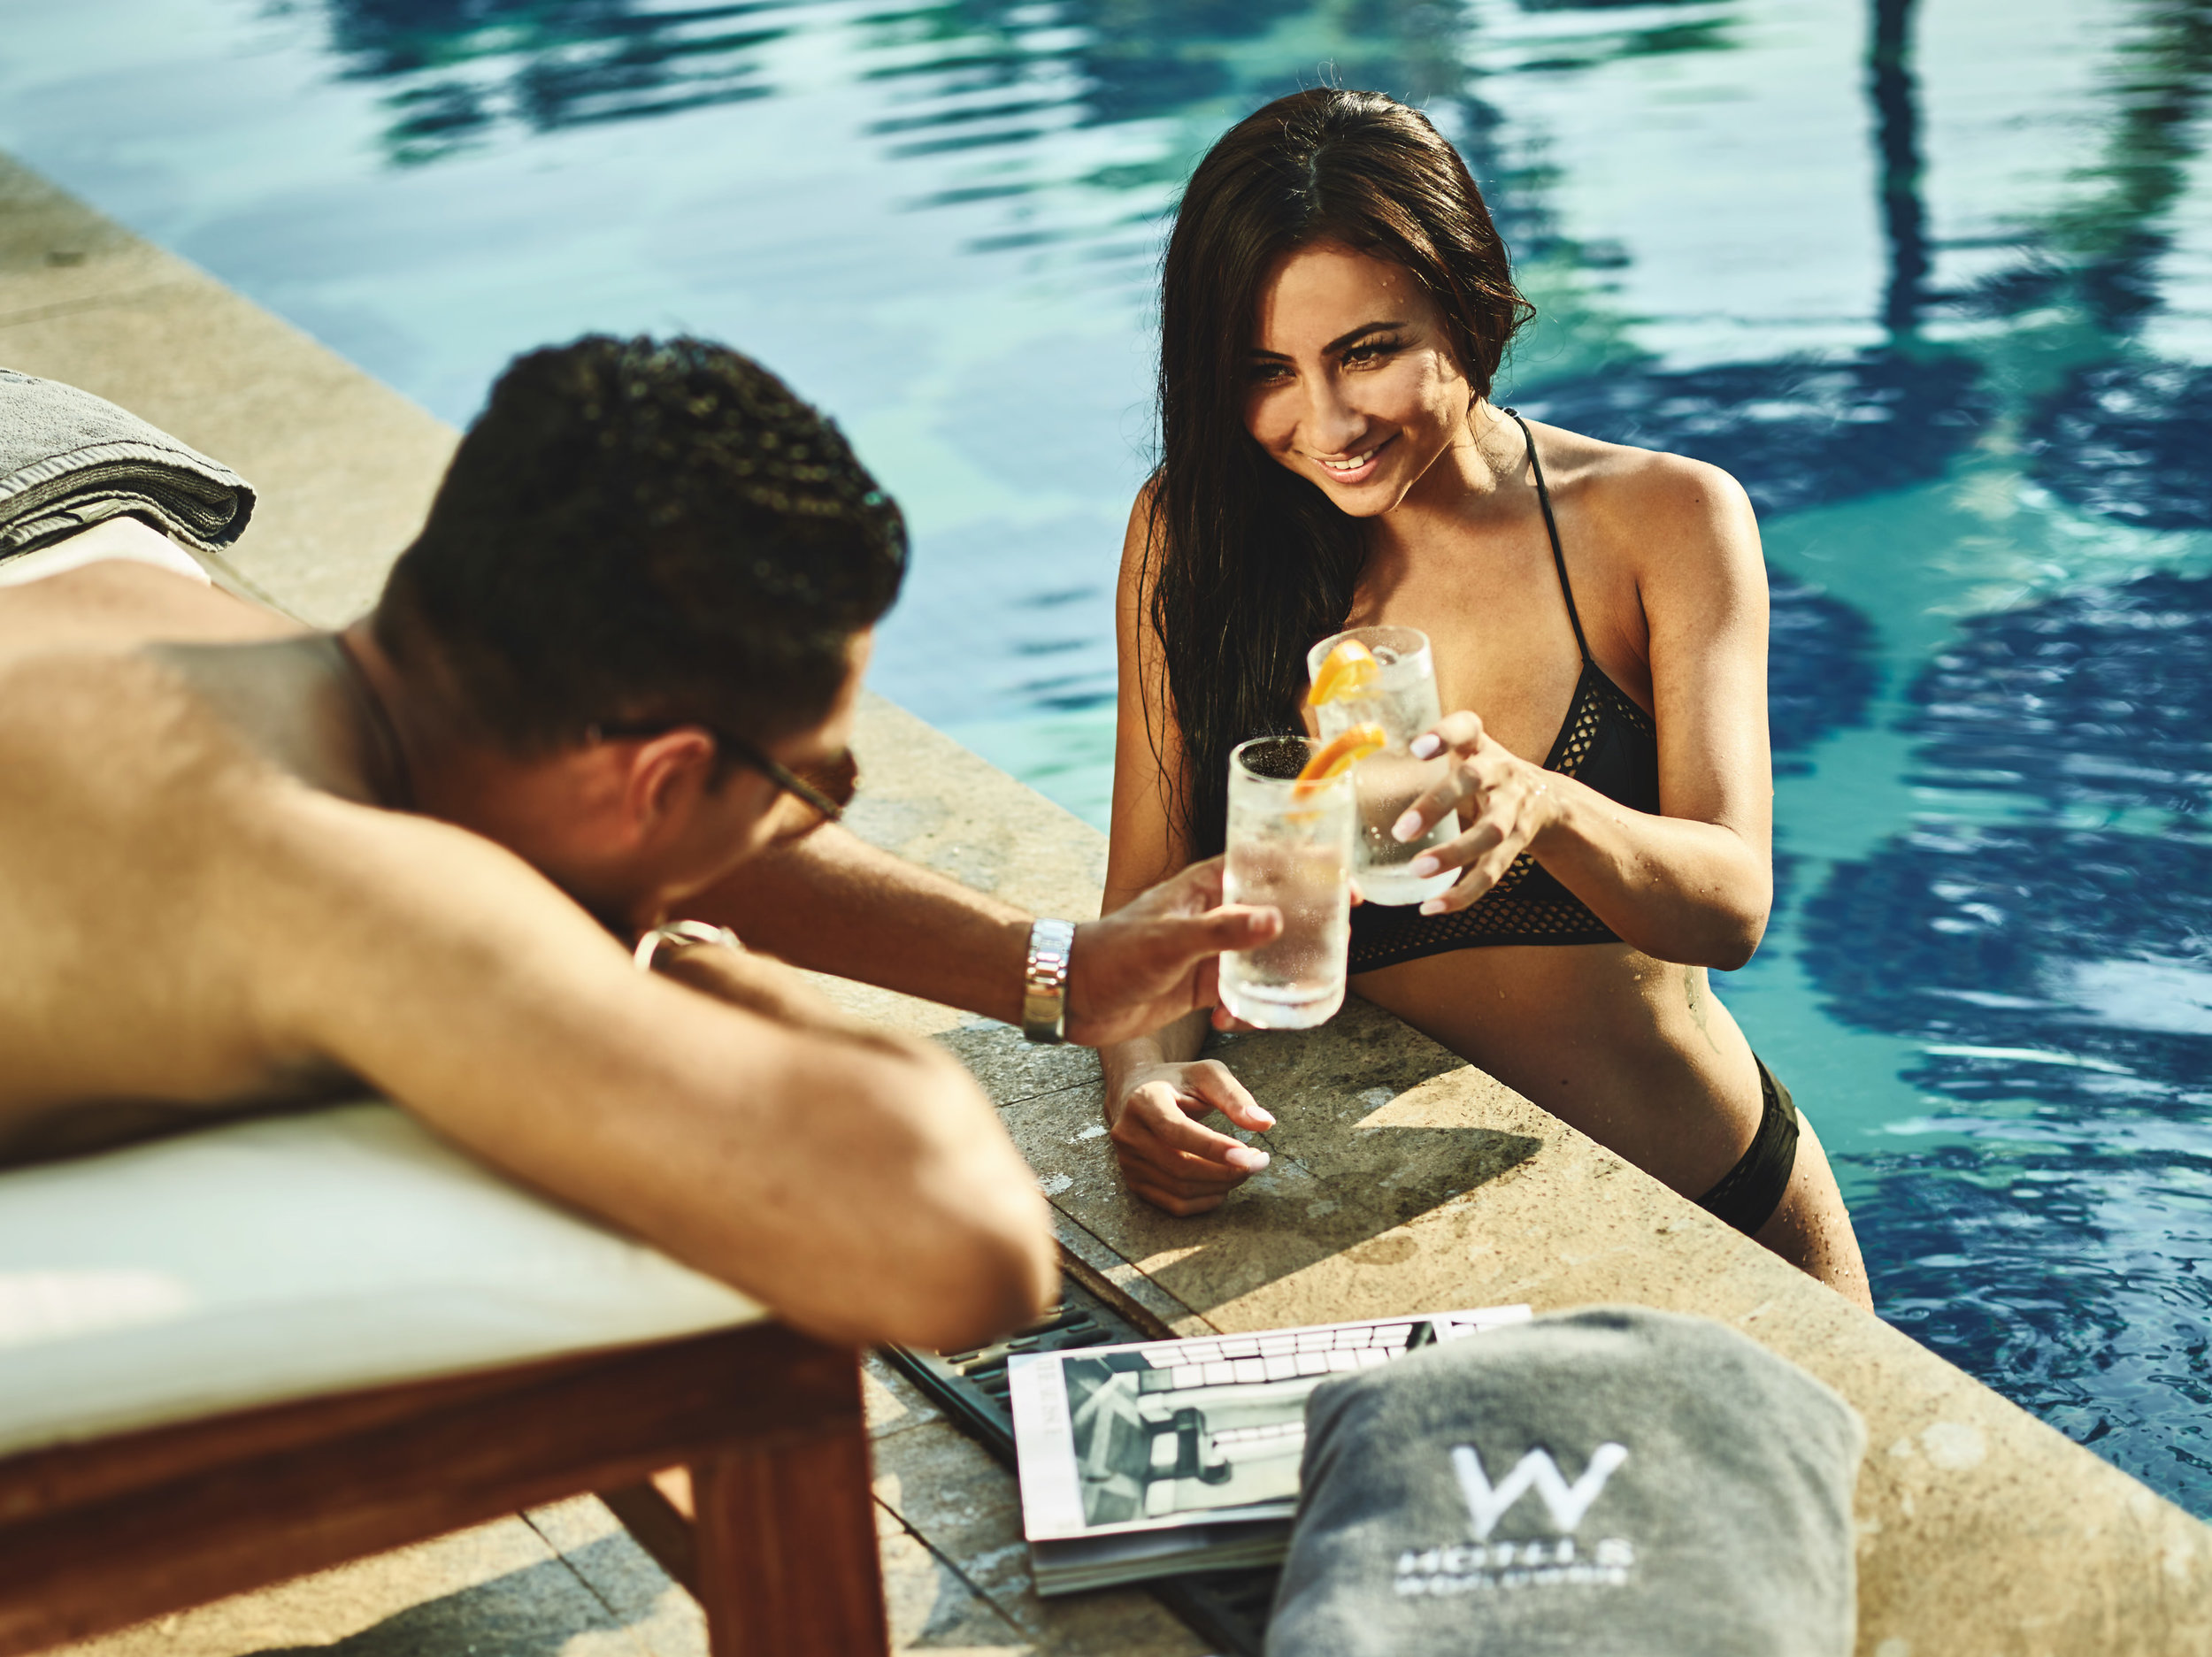 luxury hotel photoshoot poolside with alcohol,  food and beverage photography for alcohol and drinks lifestyle by harrogate, york, leeds and london based portrait lifestyle and advertising photographer matthew lloyd